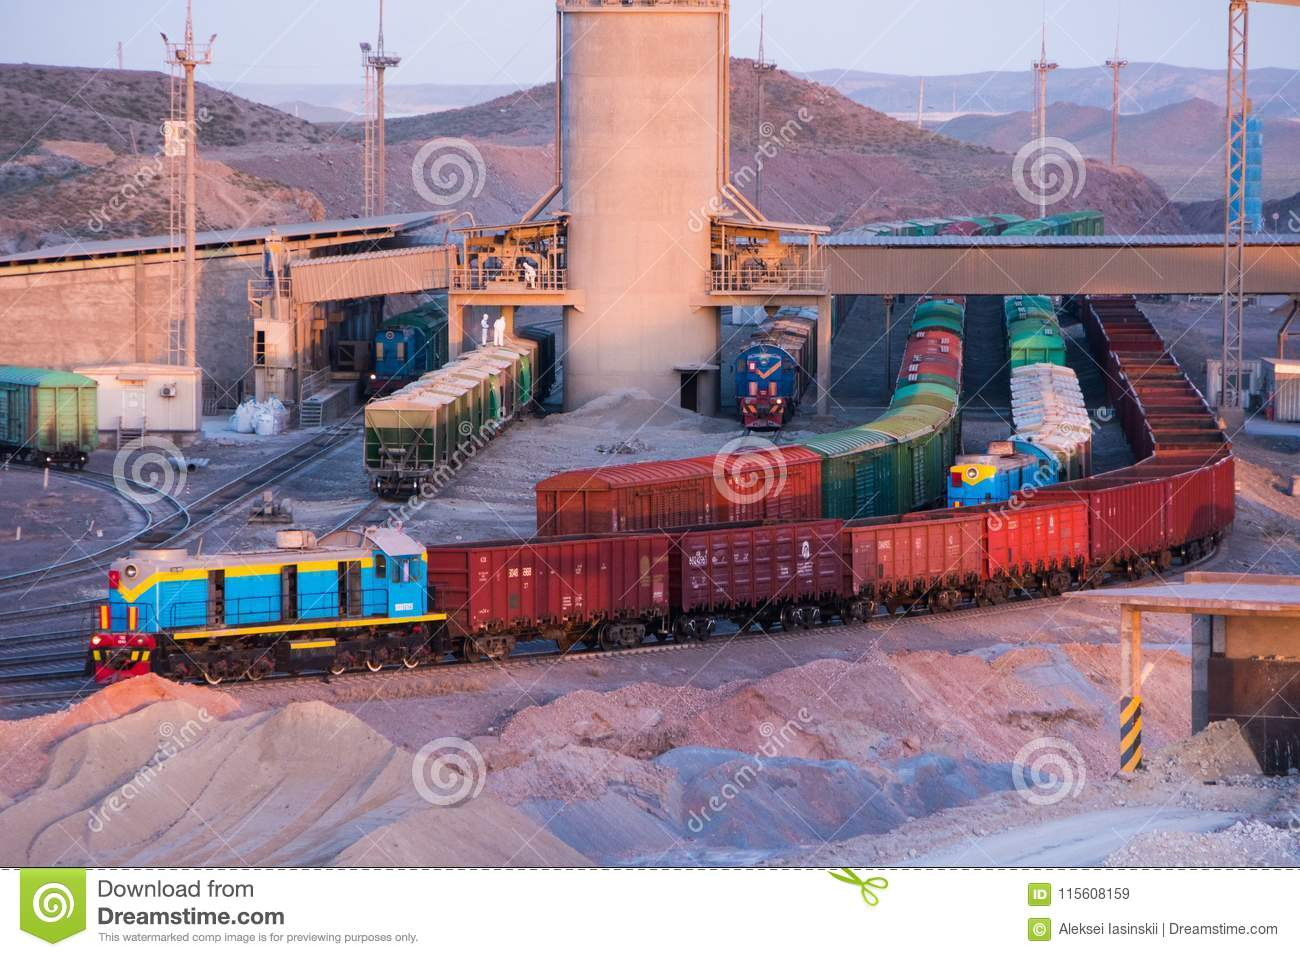 Loading and unloading station for freight trains at the cement plant